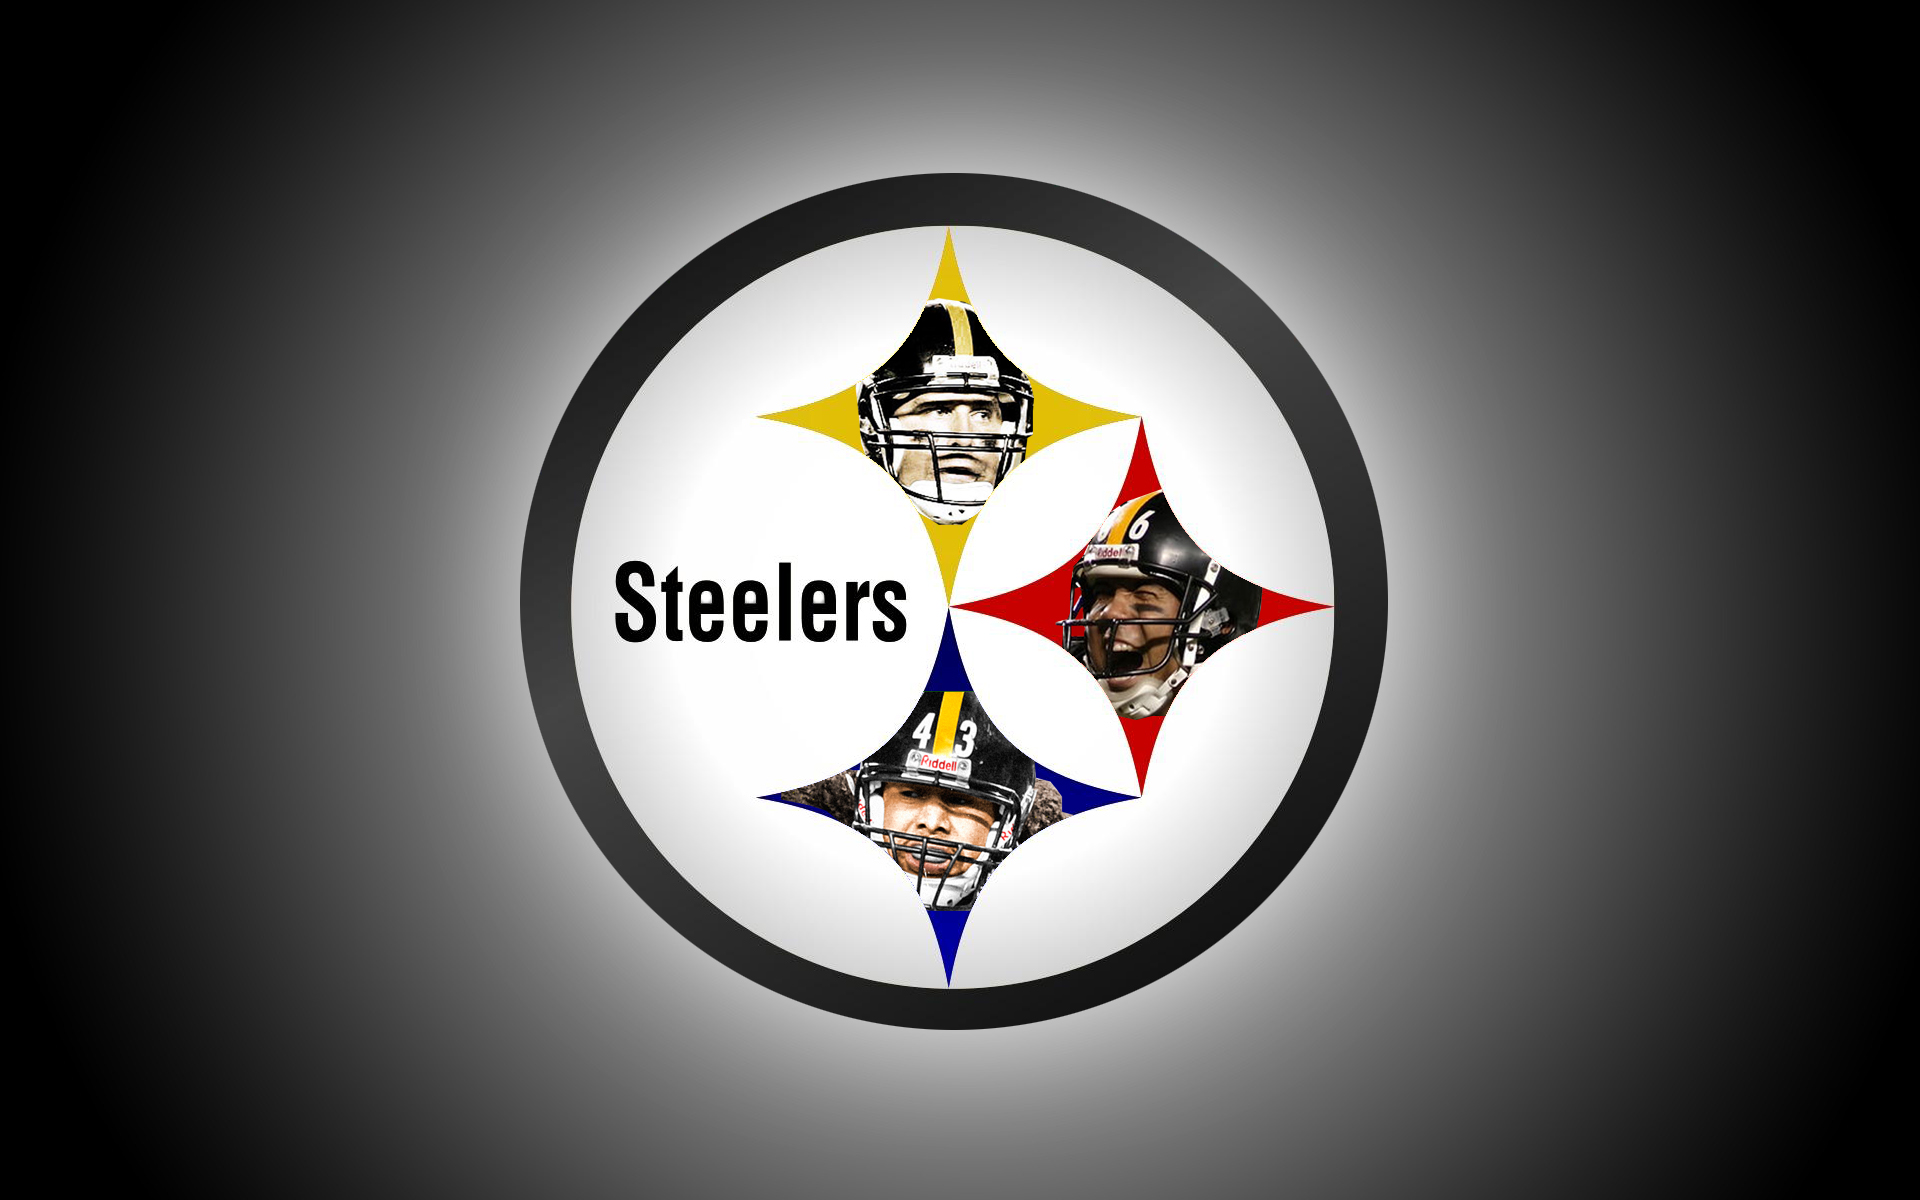 Steelers Wallpaper Photos Background